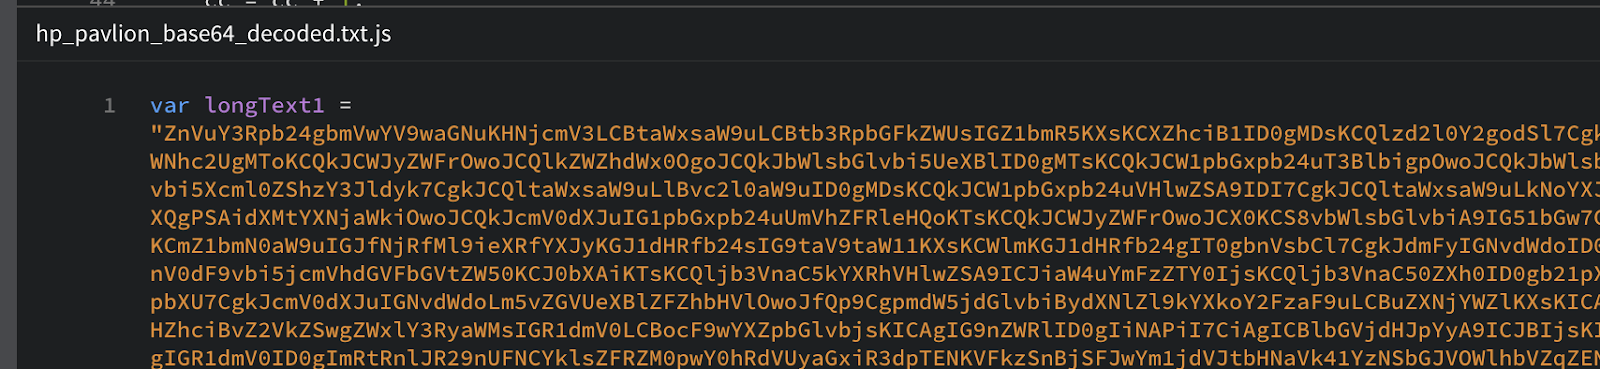 Some stuff about security  : Unknowncrypter, the crypter